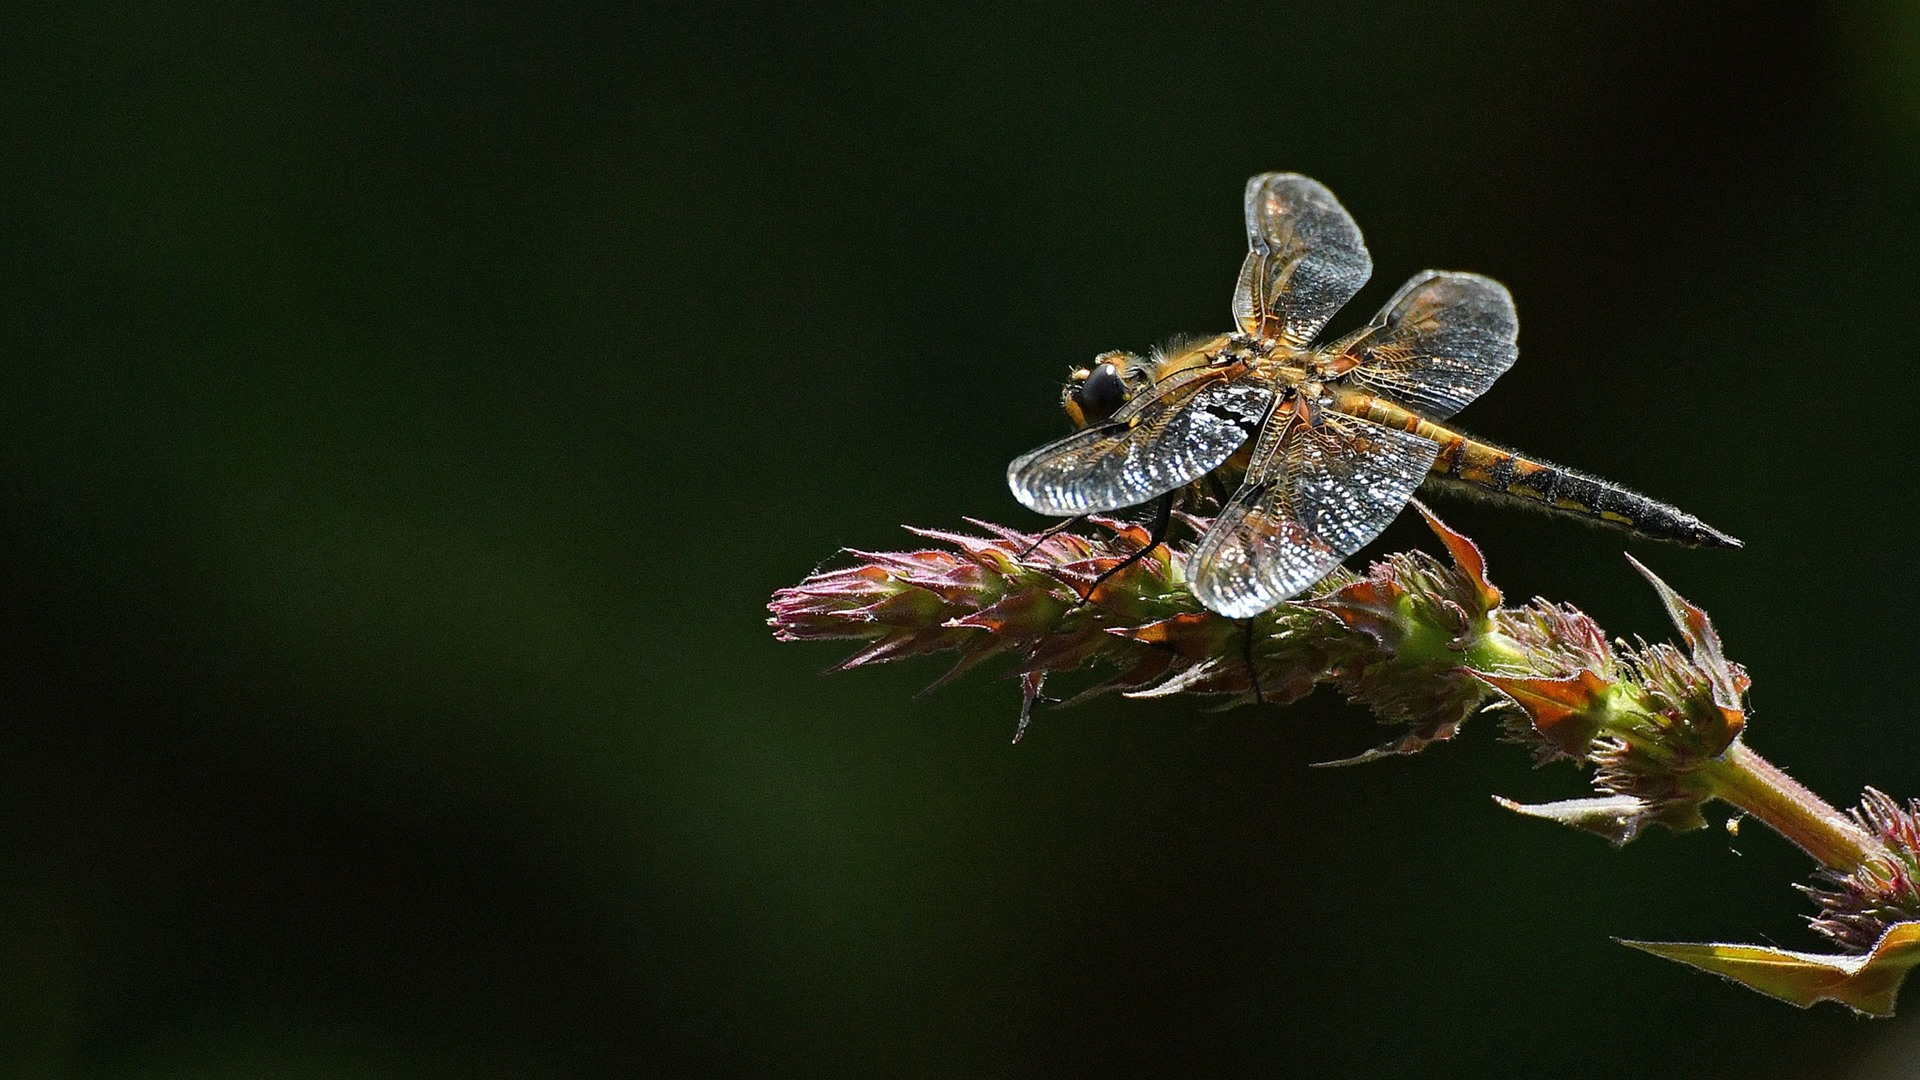 Eyes Of A Dragonfly Nature Dew Cute Macro Hd Wallpaper: Wallpaper Dragonfly, Plant, Black Background 1920x1080